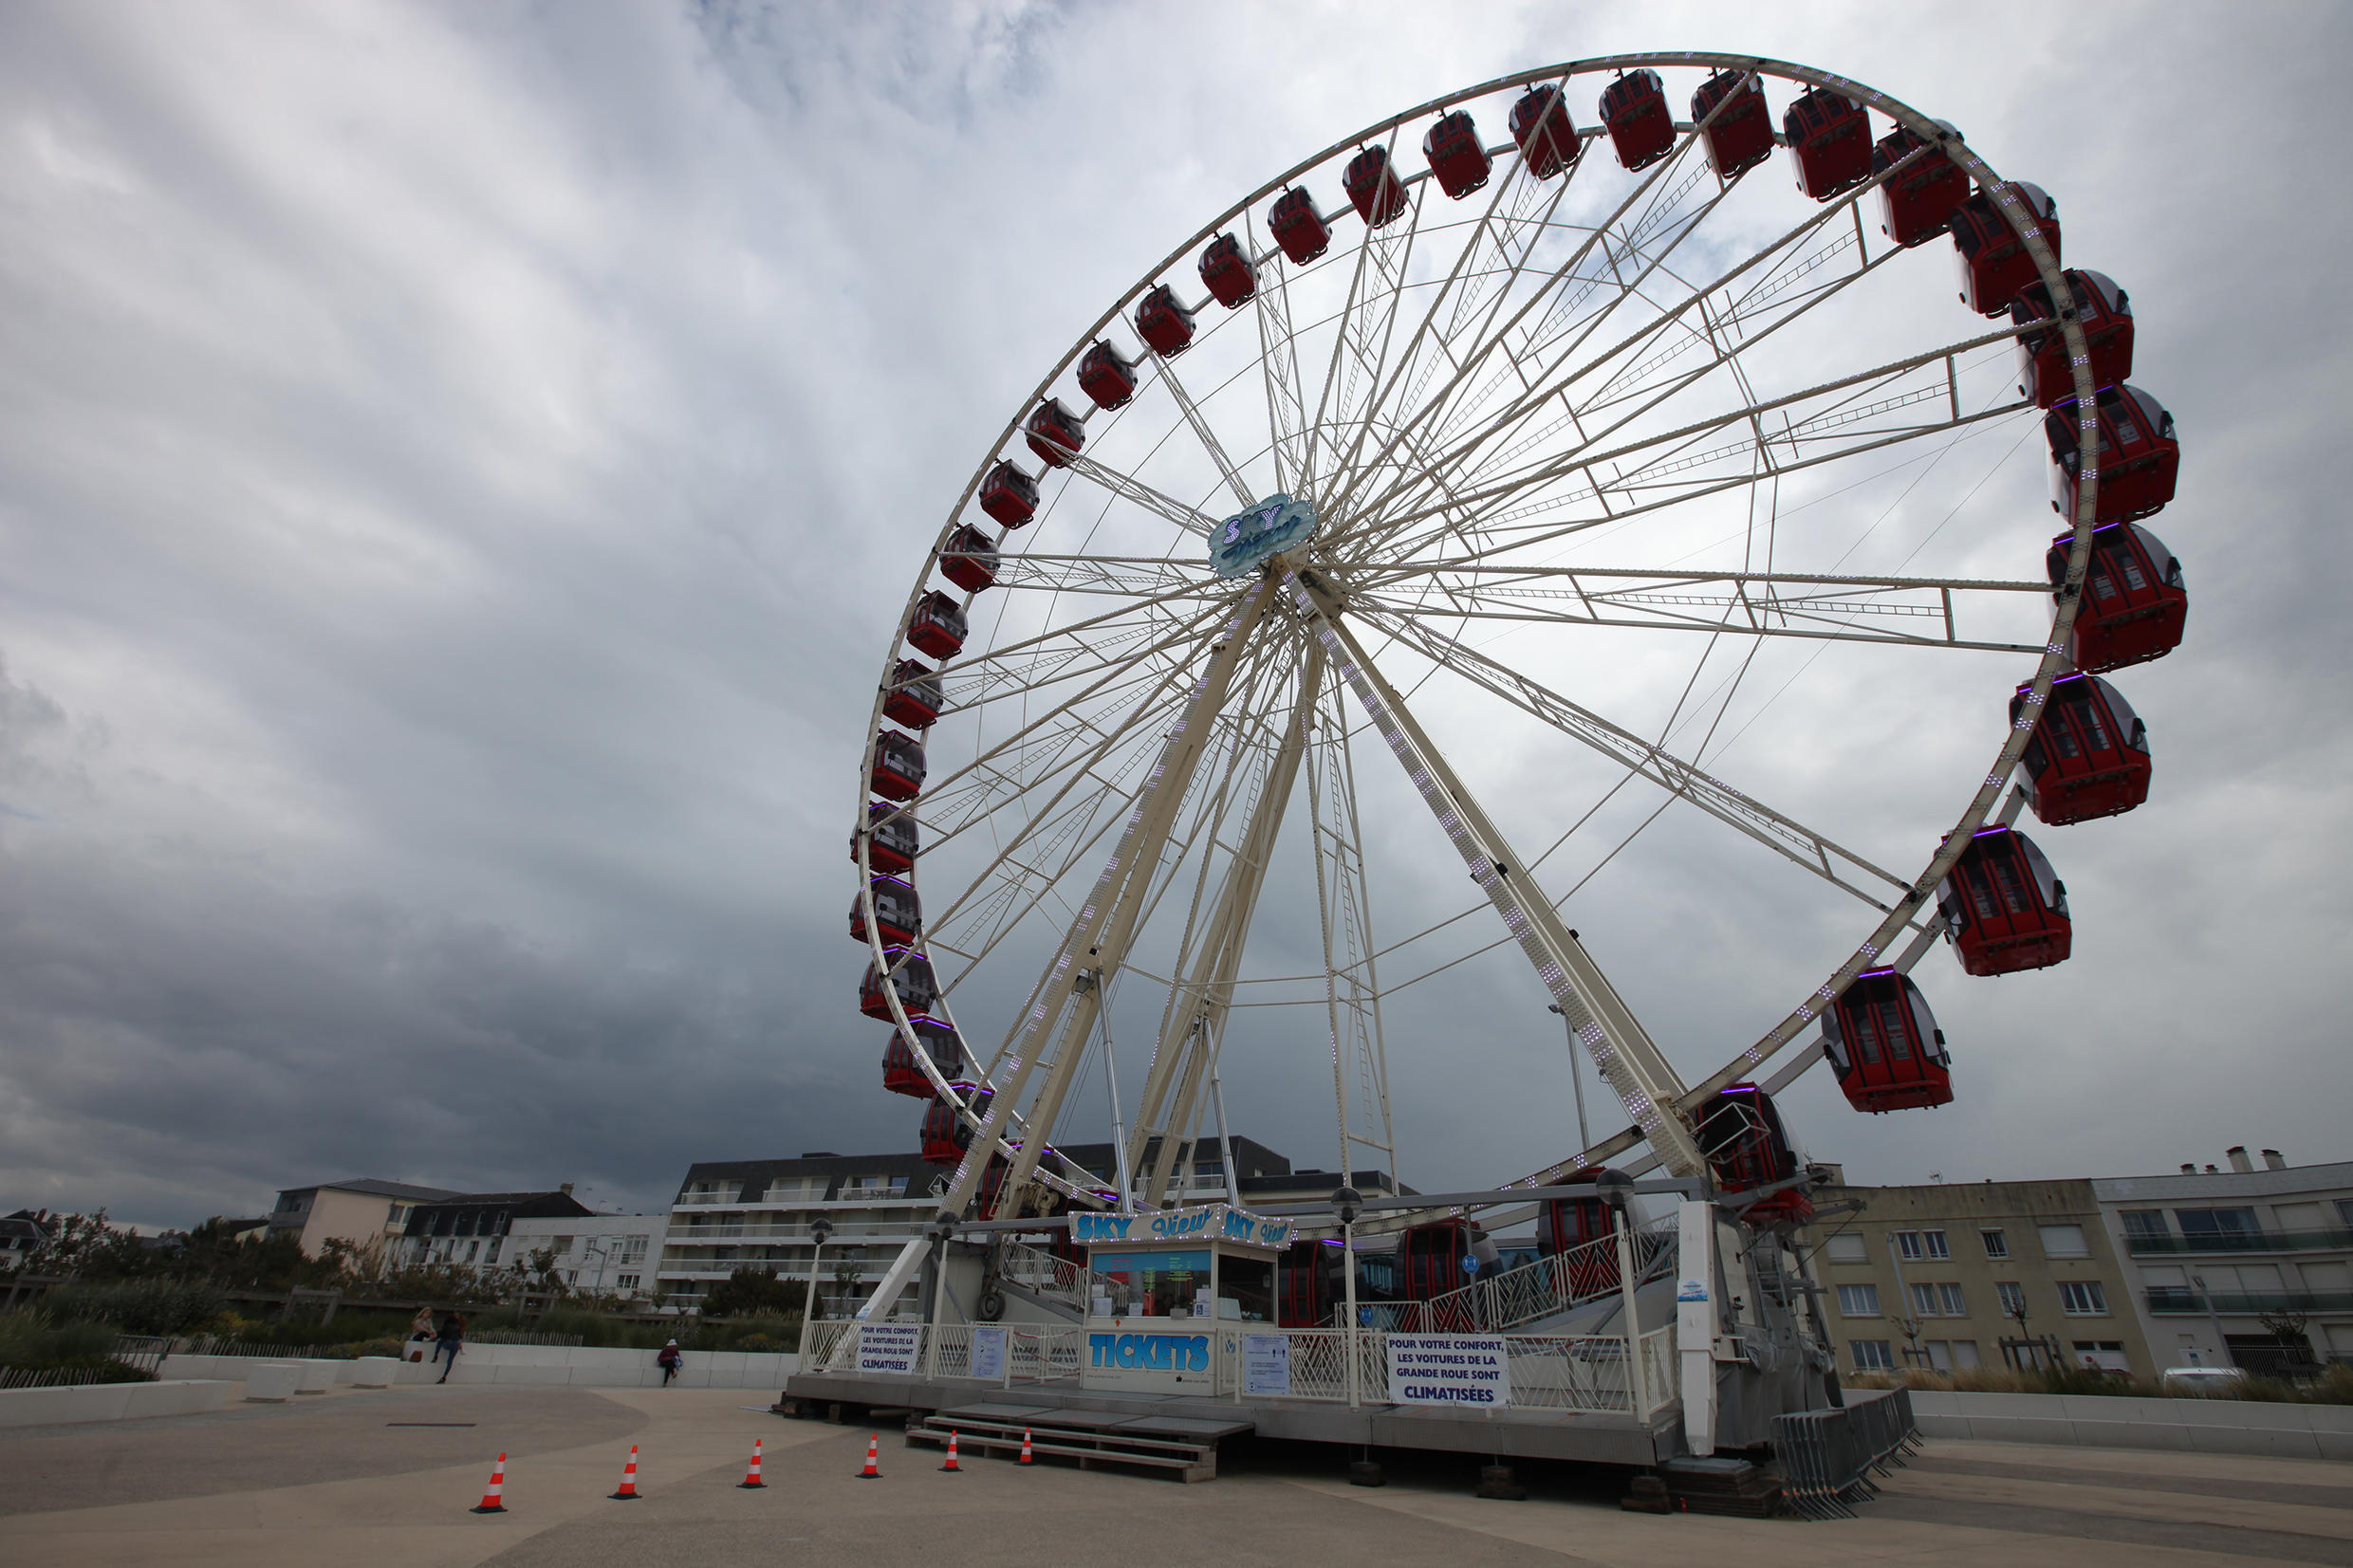 The big wheel of Berck-sur-Mer is turning again, but hardly any people are using it.